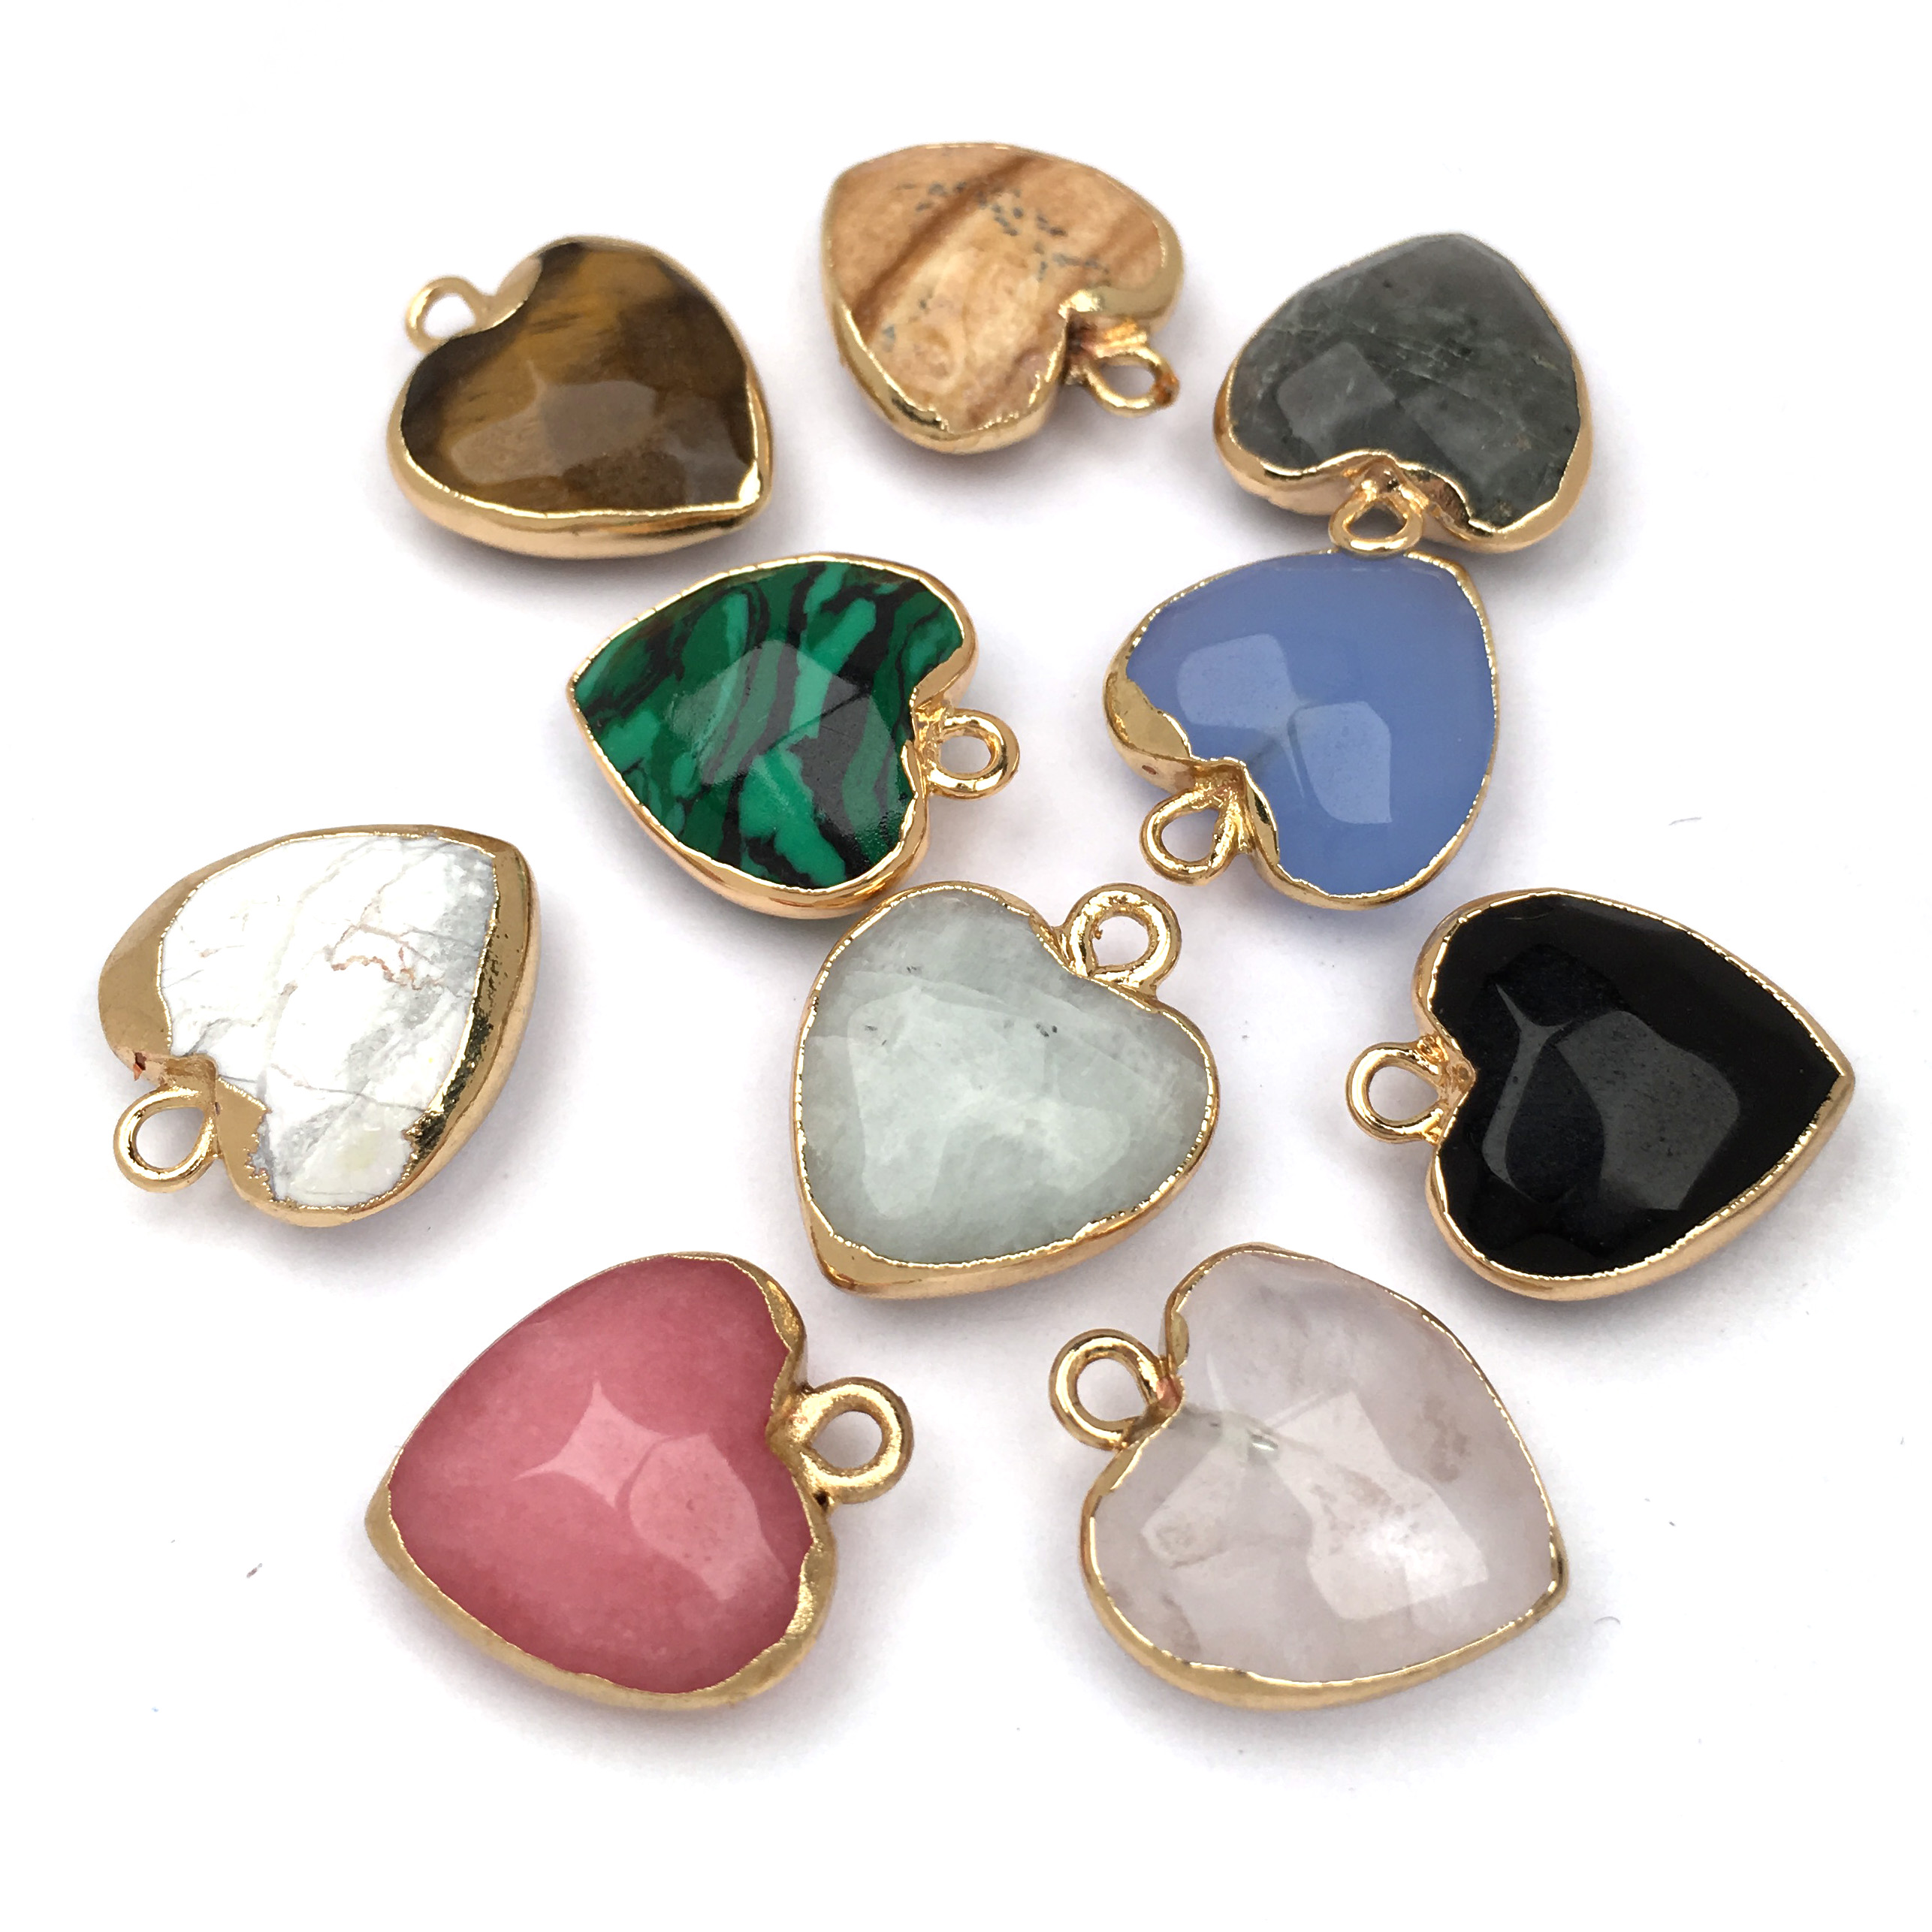 Natural Stone Crystal Pendant charm Heart shape Pendants for Jewelry Making Supplies DIY Fine necklace accessories size 14x17mm